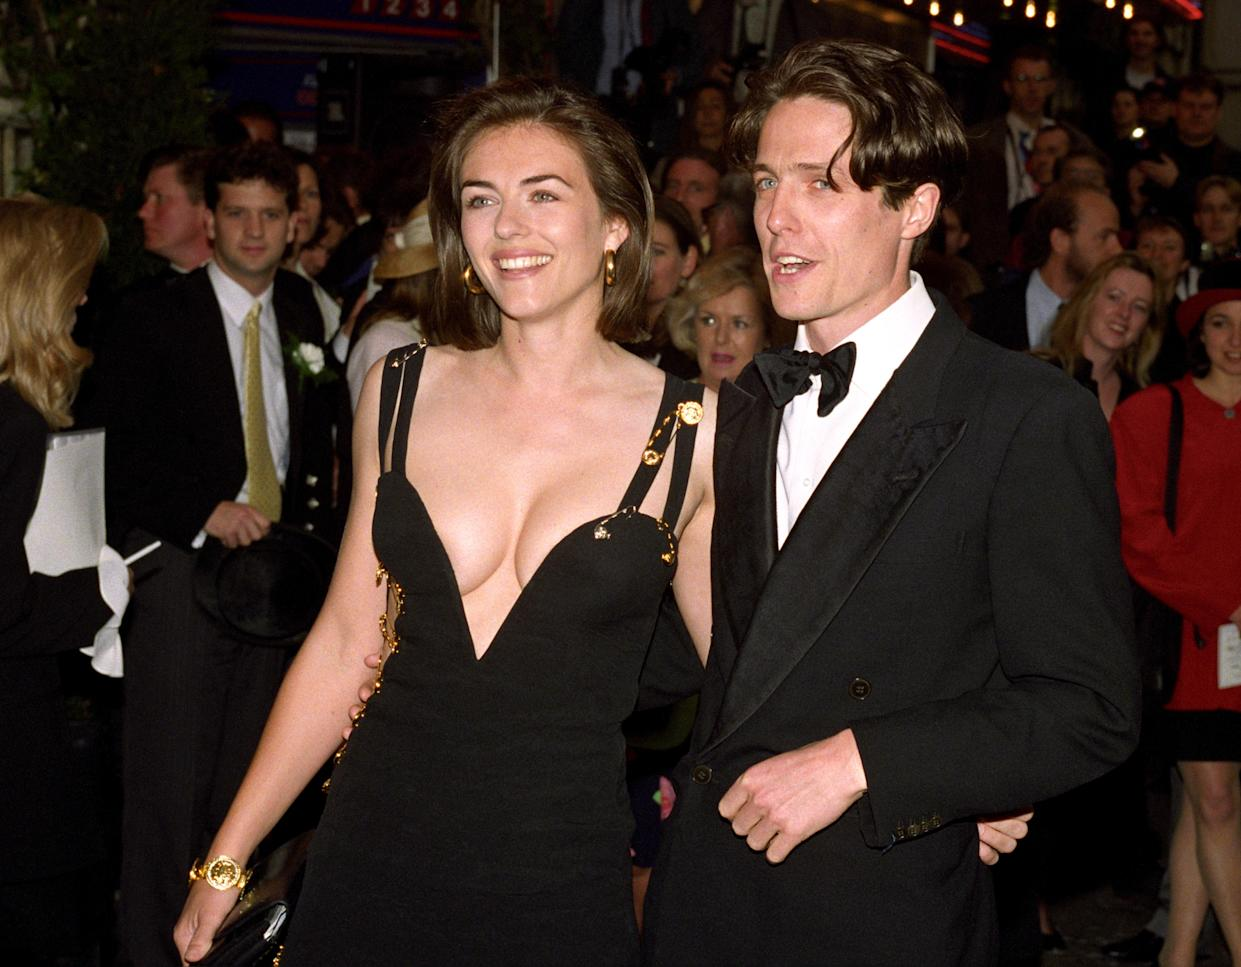 Hugh Grant and Elizabeth Hurley at the premiere of the 1994 film Four Weddings and a Funeral.